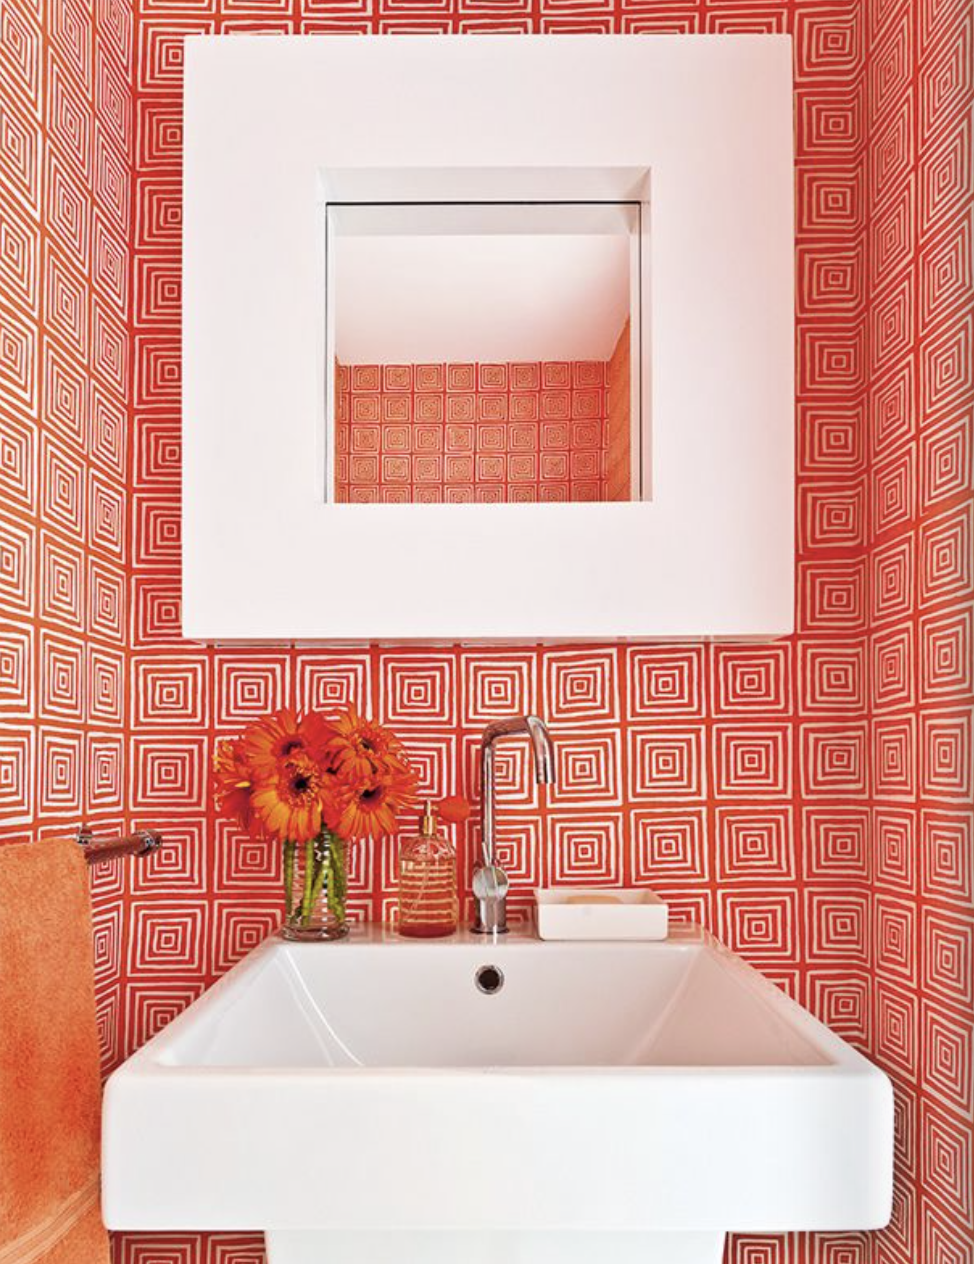 This bathroom is so cool looking with this bright orange